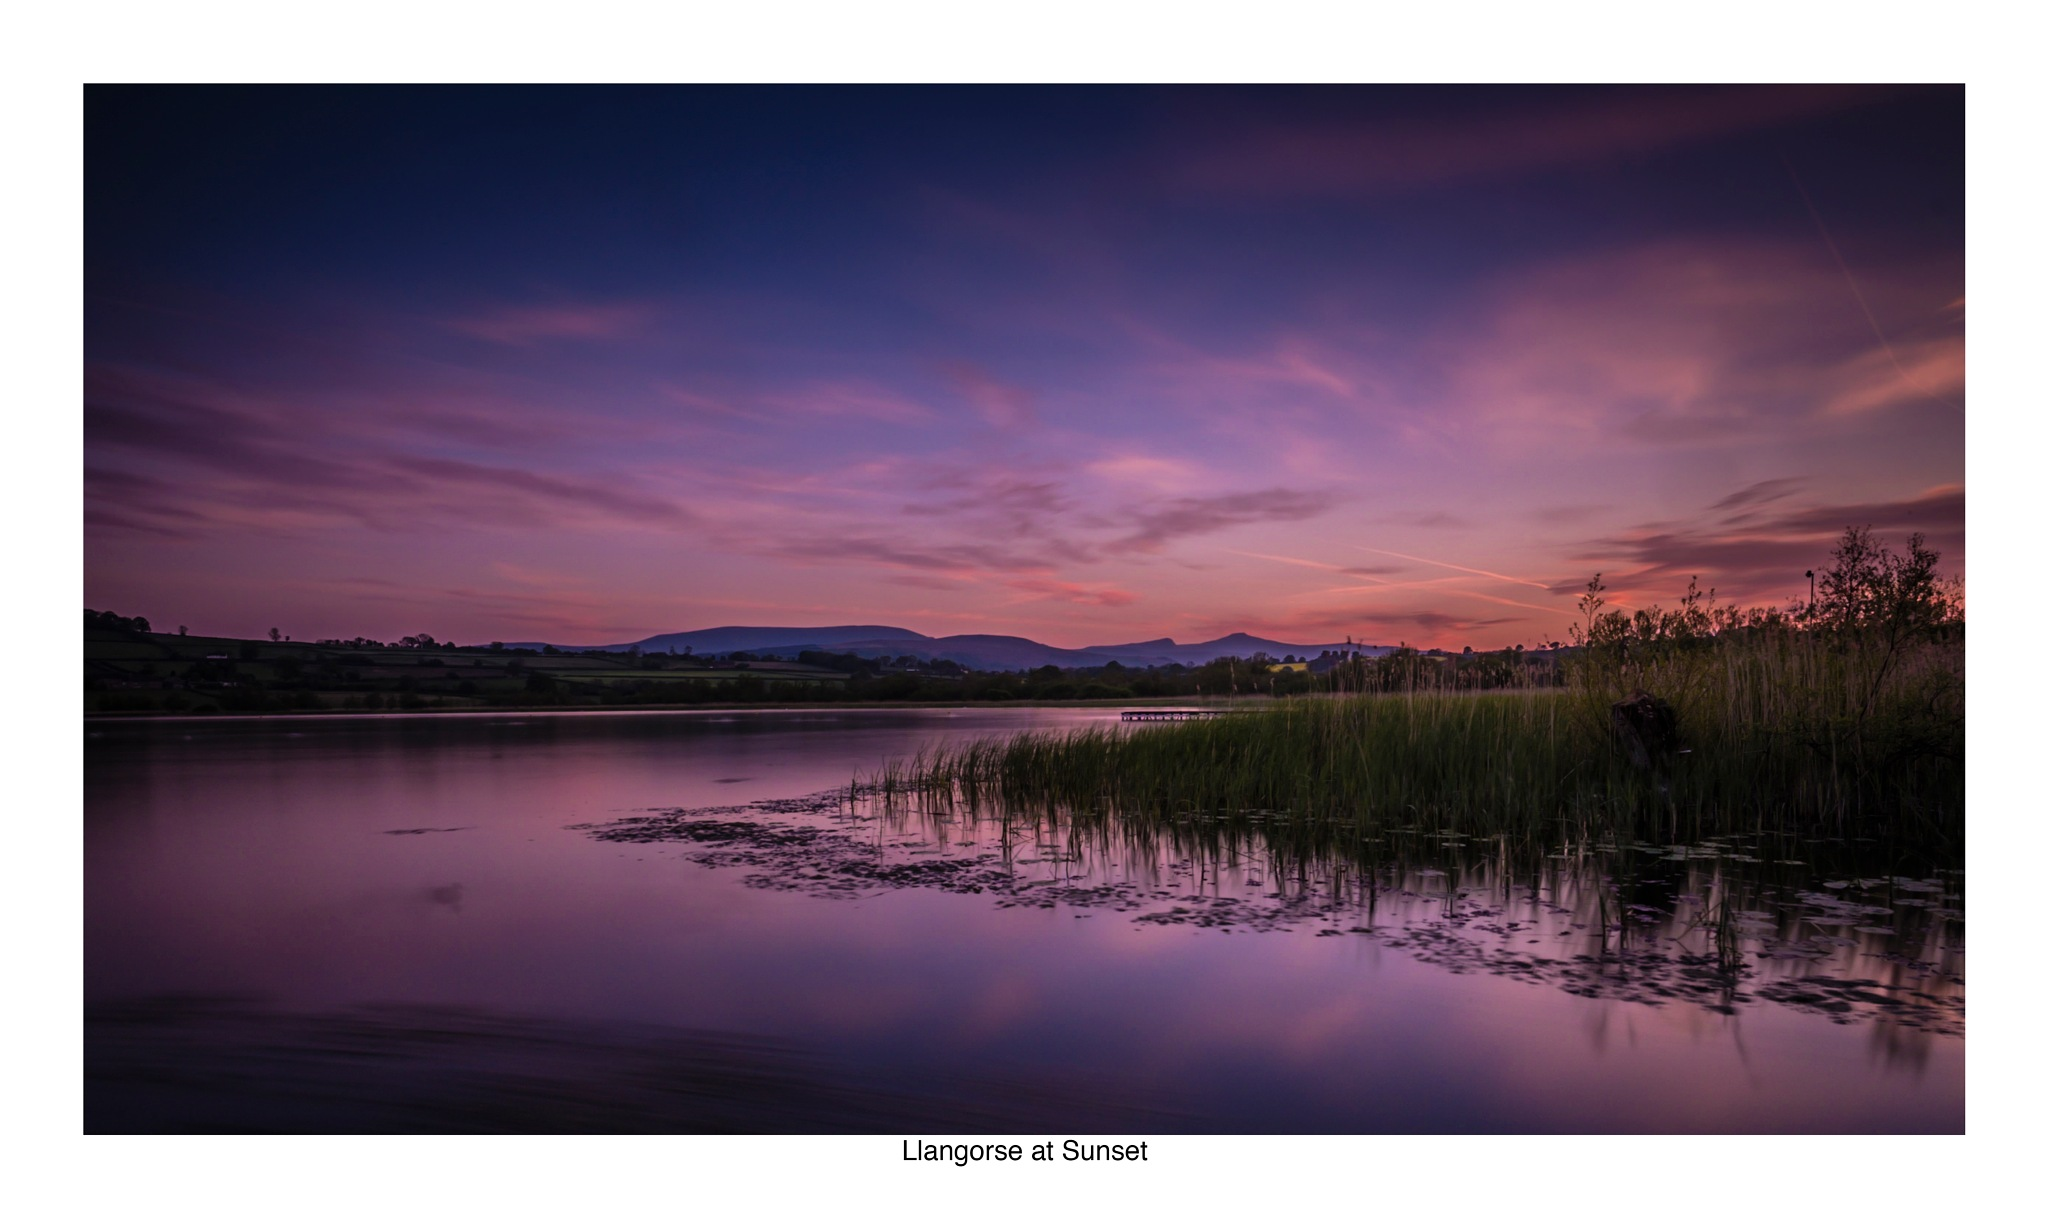 Llangorse at Sunset by Wayne Wilkins @ Creative Looks Photography